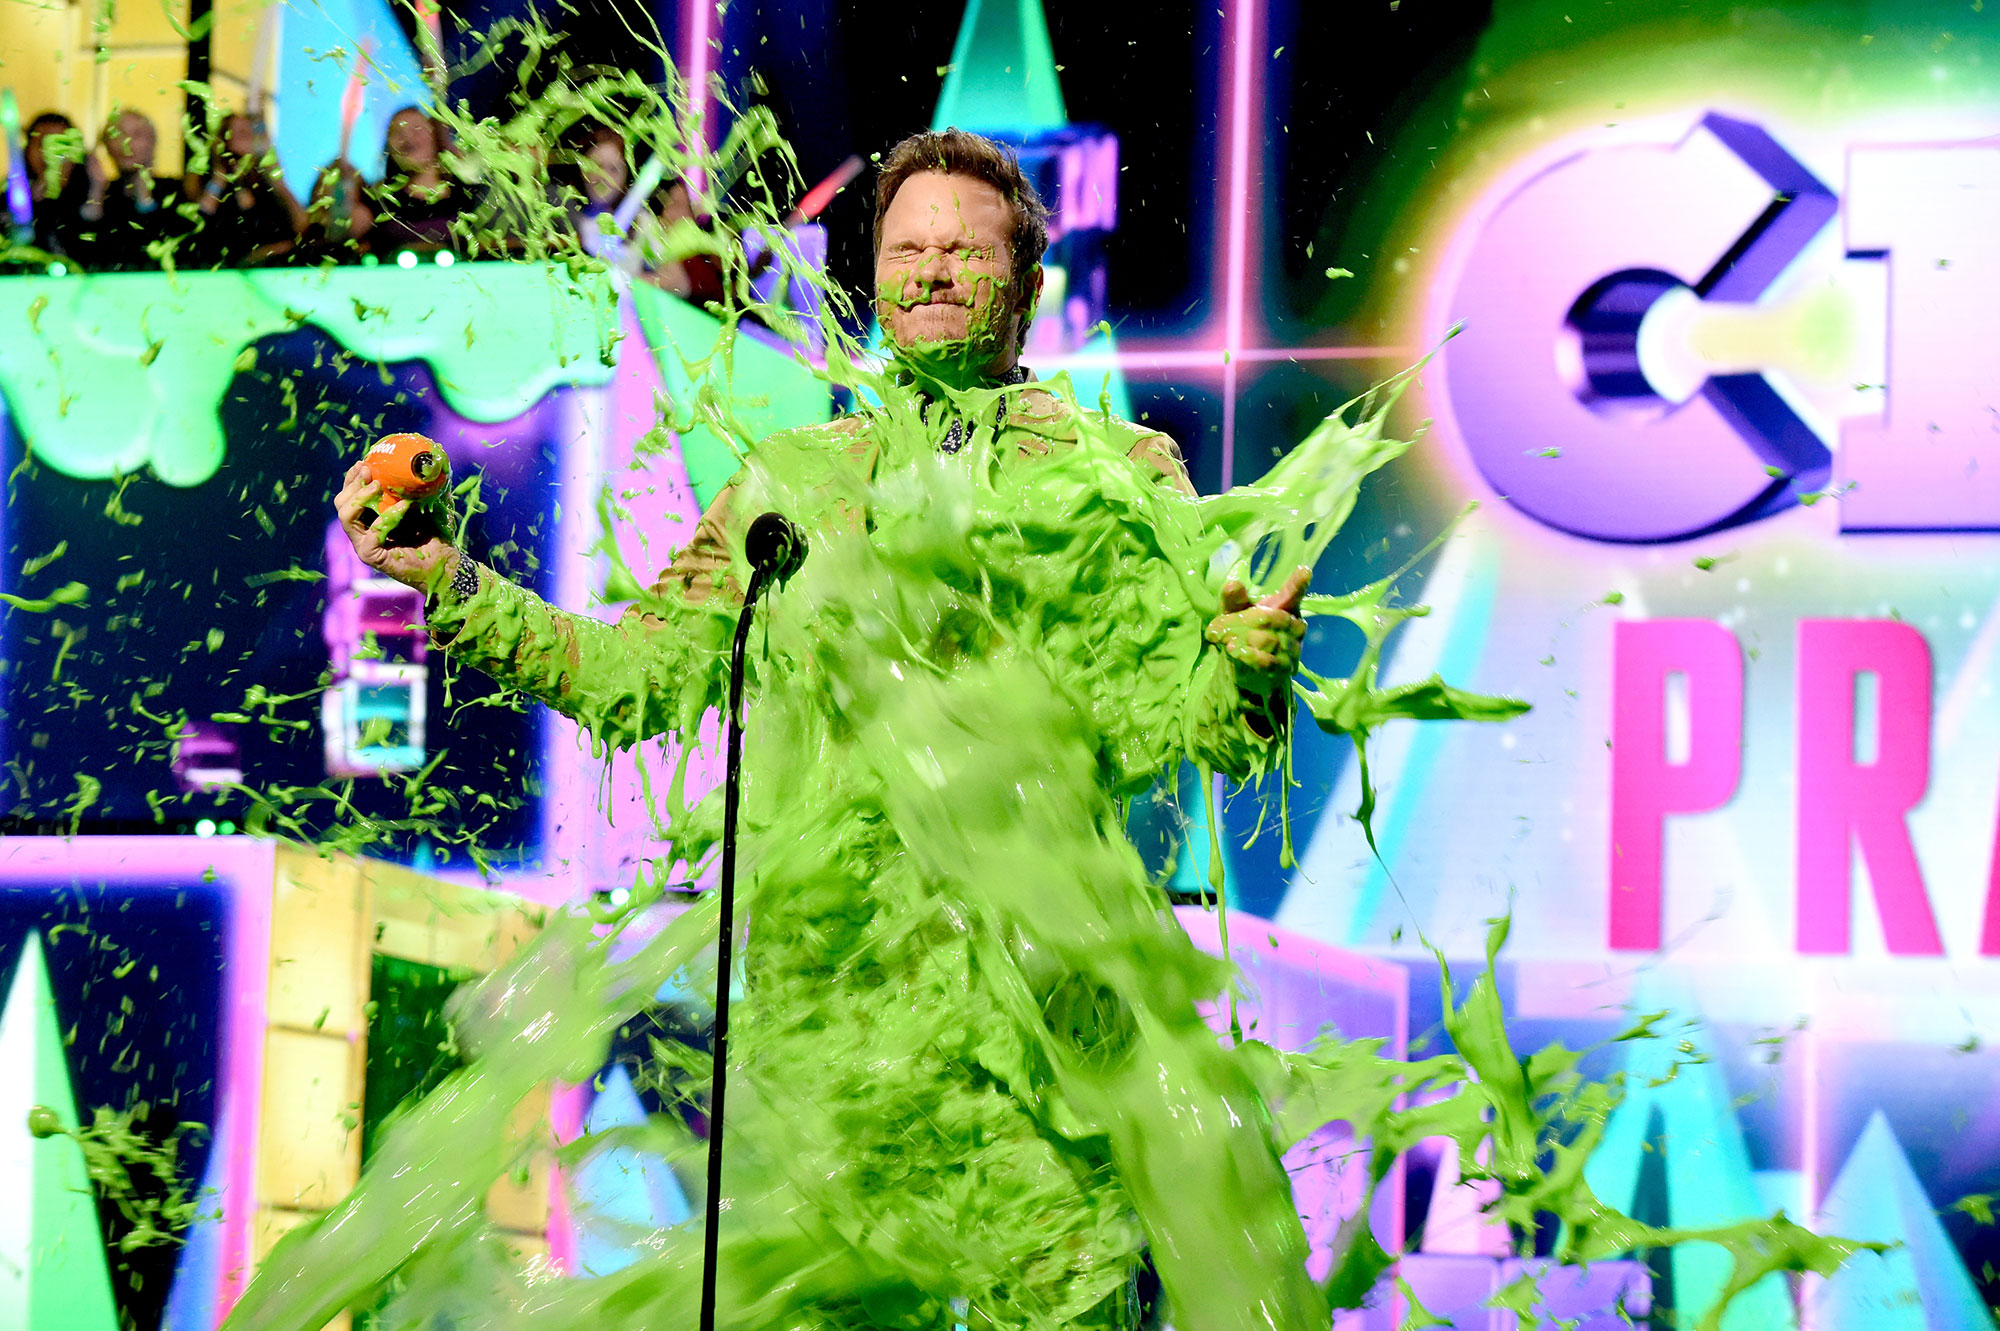 chris pratt covered in green slime